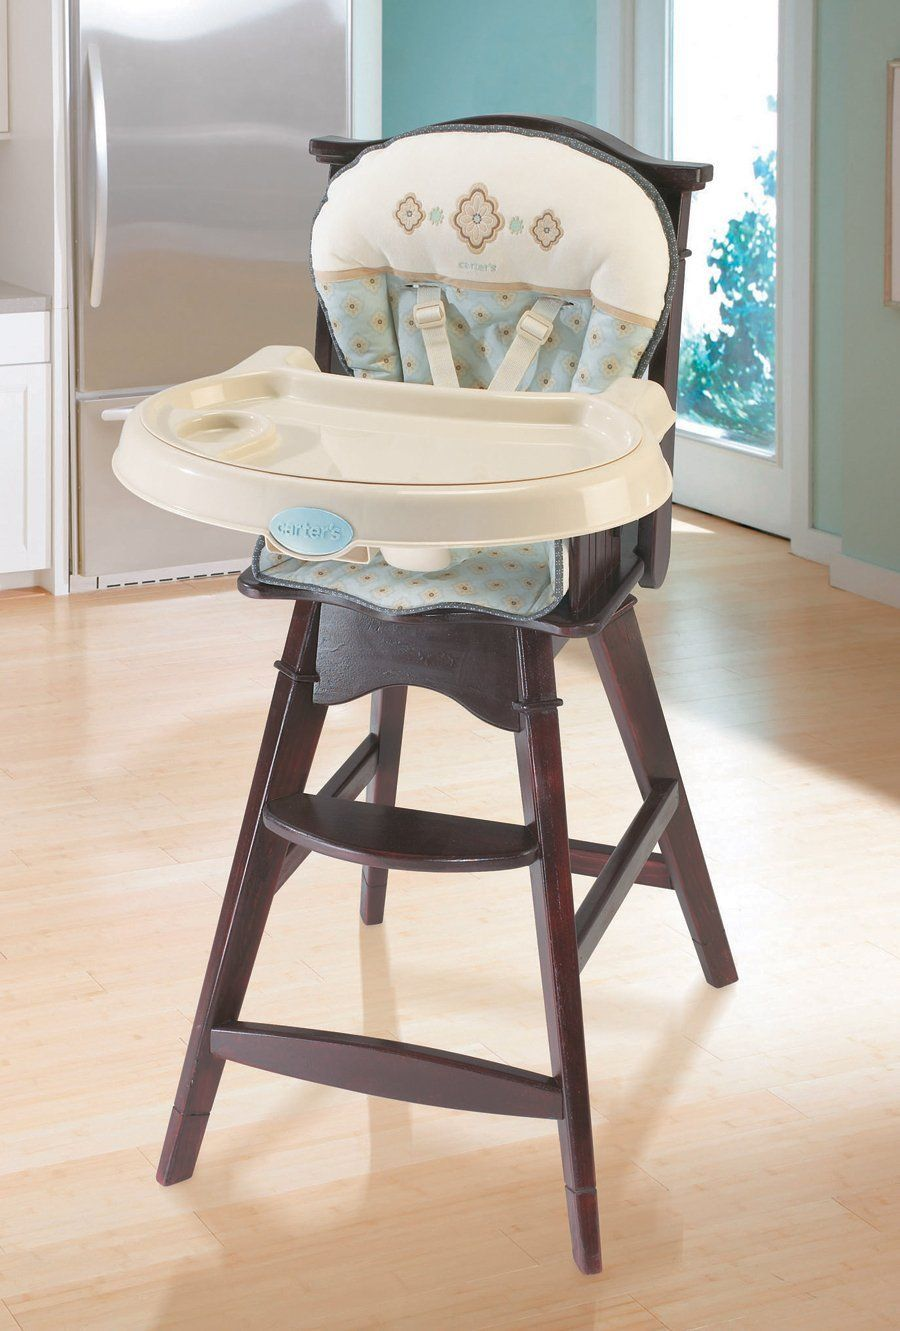 Comfort Chair Price Carters Classic Comfort Reclining Wood High Chair Whisper